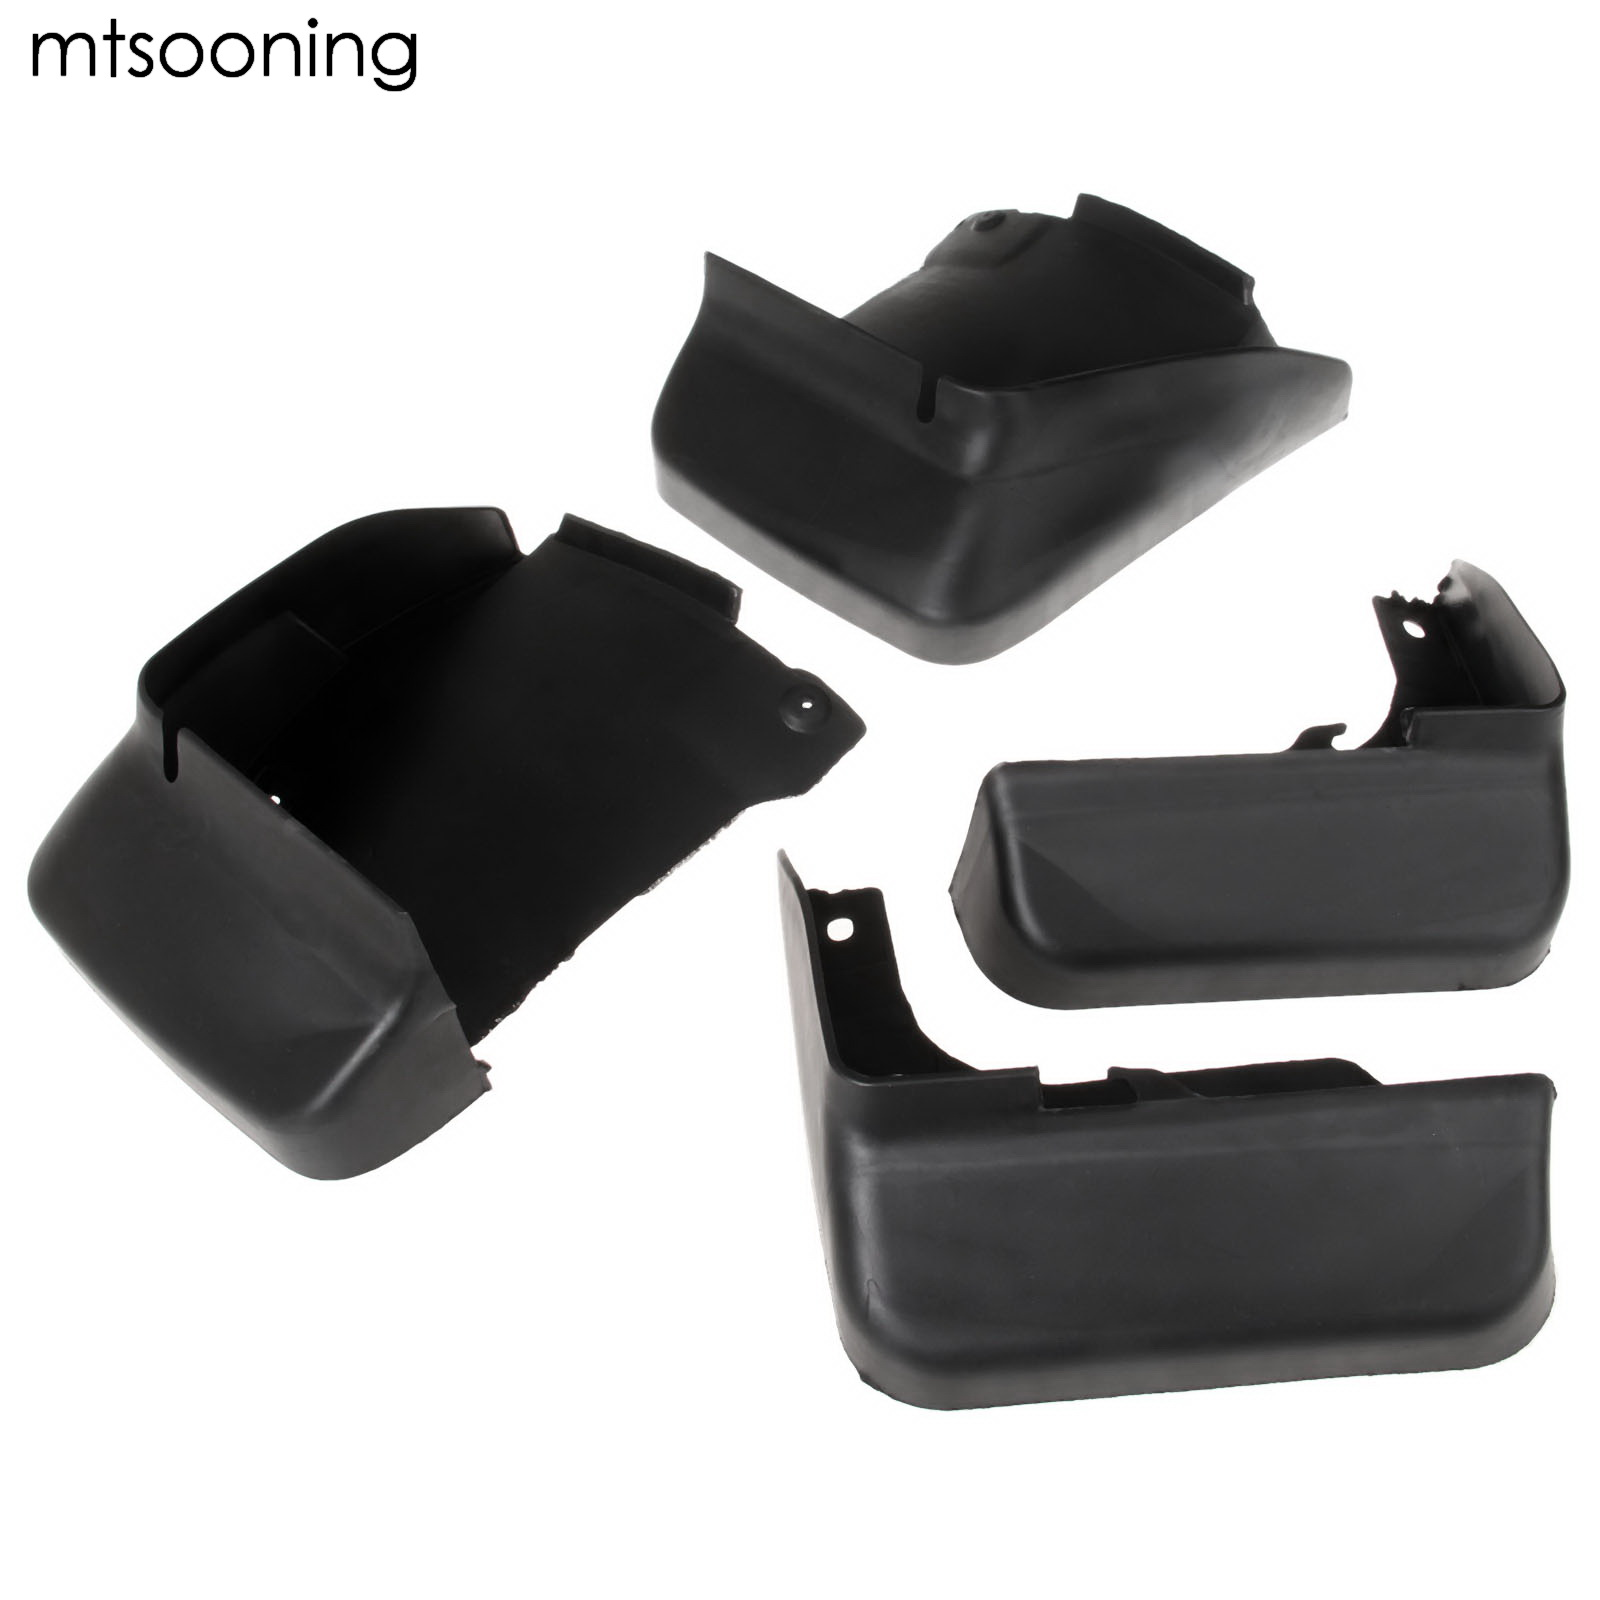 mtsooning 4pcs Mud Splash Flap Guard Fender Mudguards For Honda Accord Sedan Coupe 2003 2004 2005 2006 2007 Front Rear Mud Flap все цены